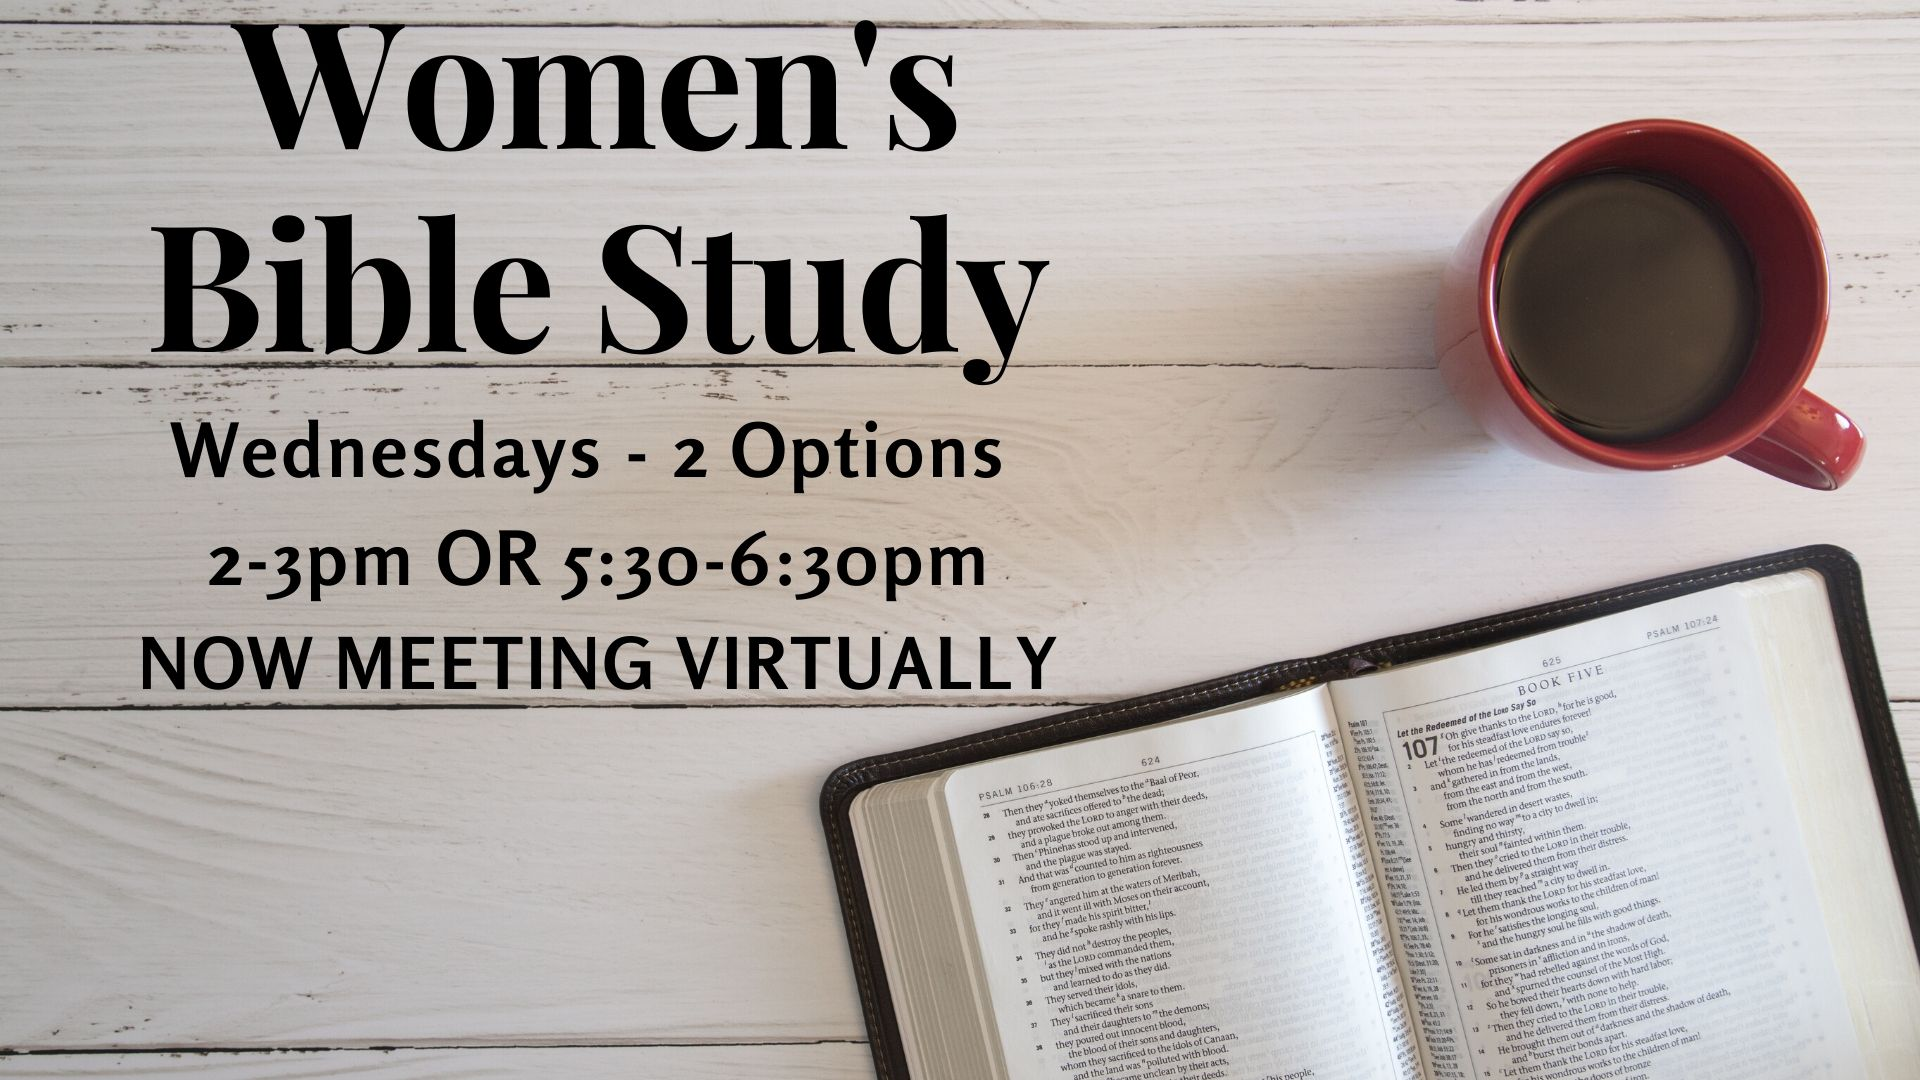 2options Women's Bible Study image